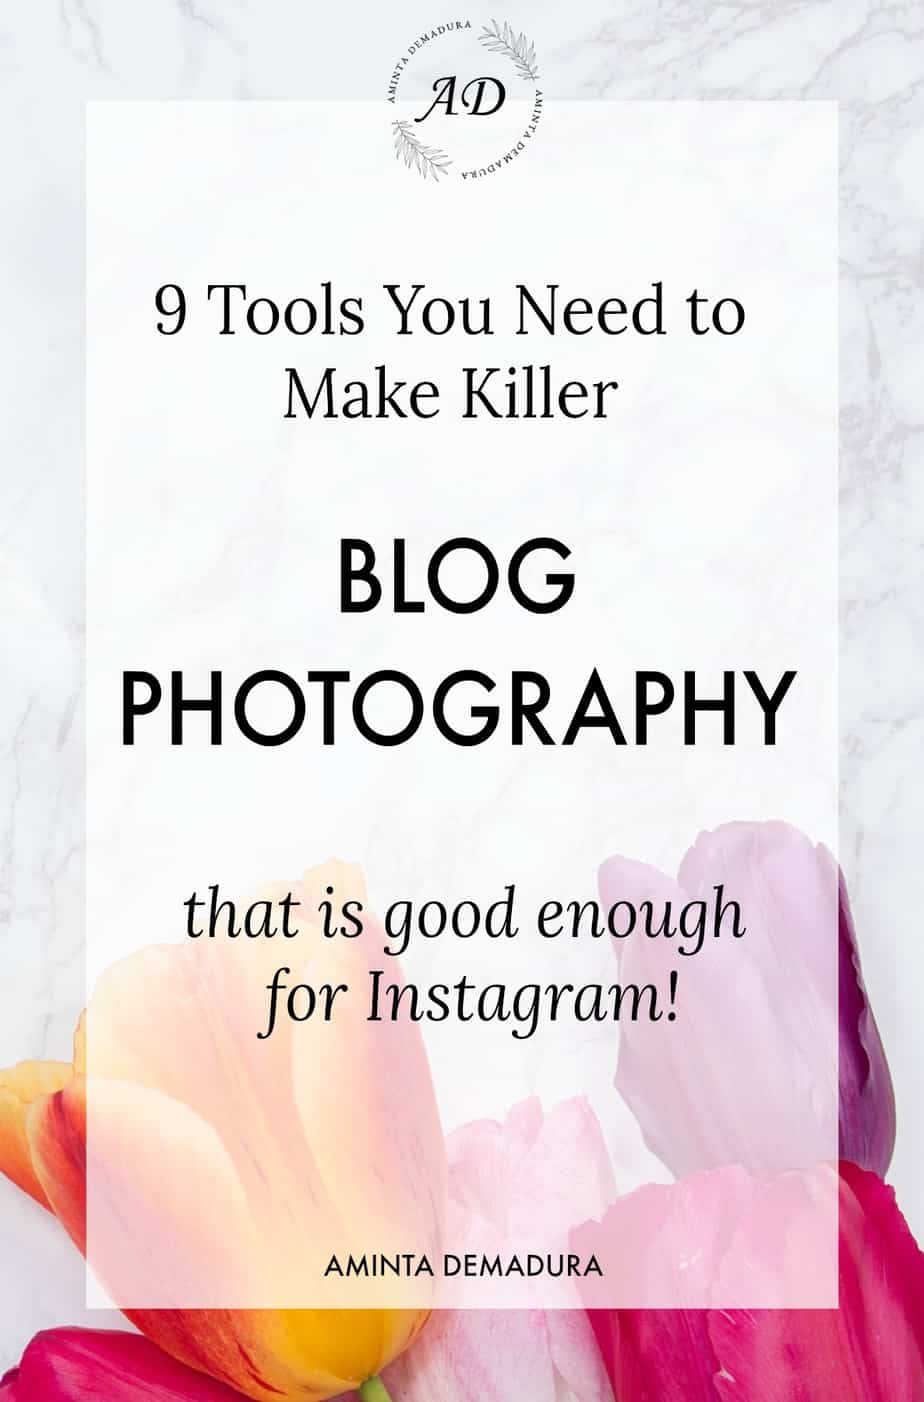 Blog Photography Tools